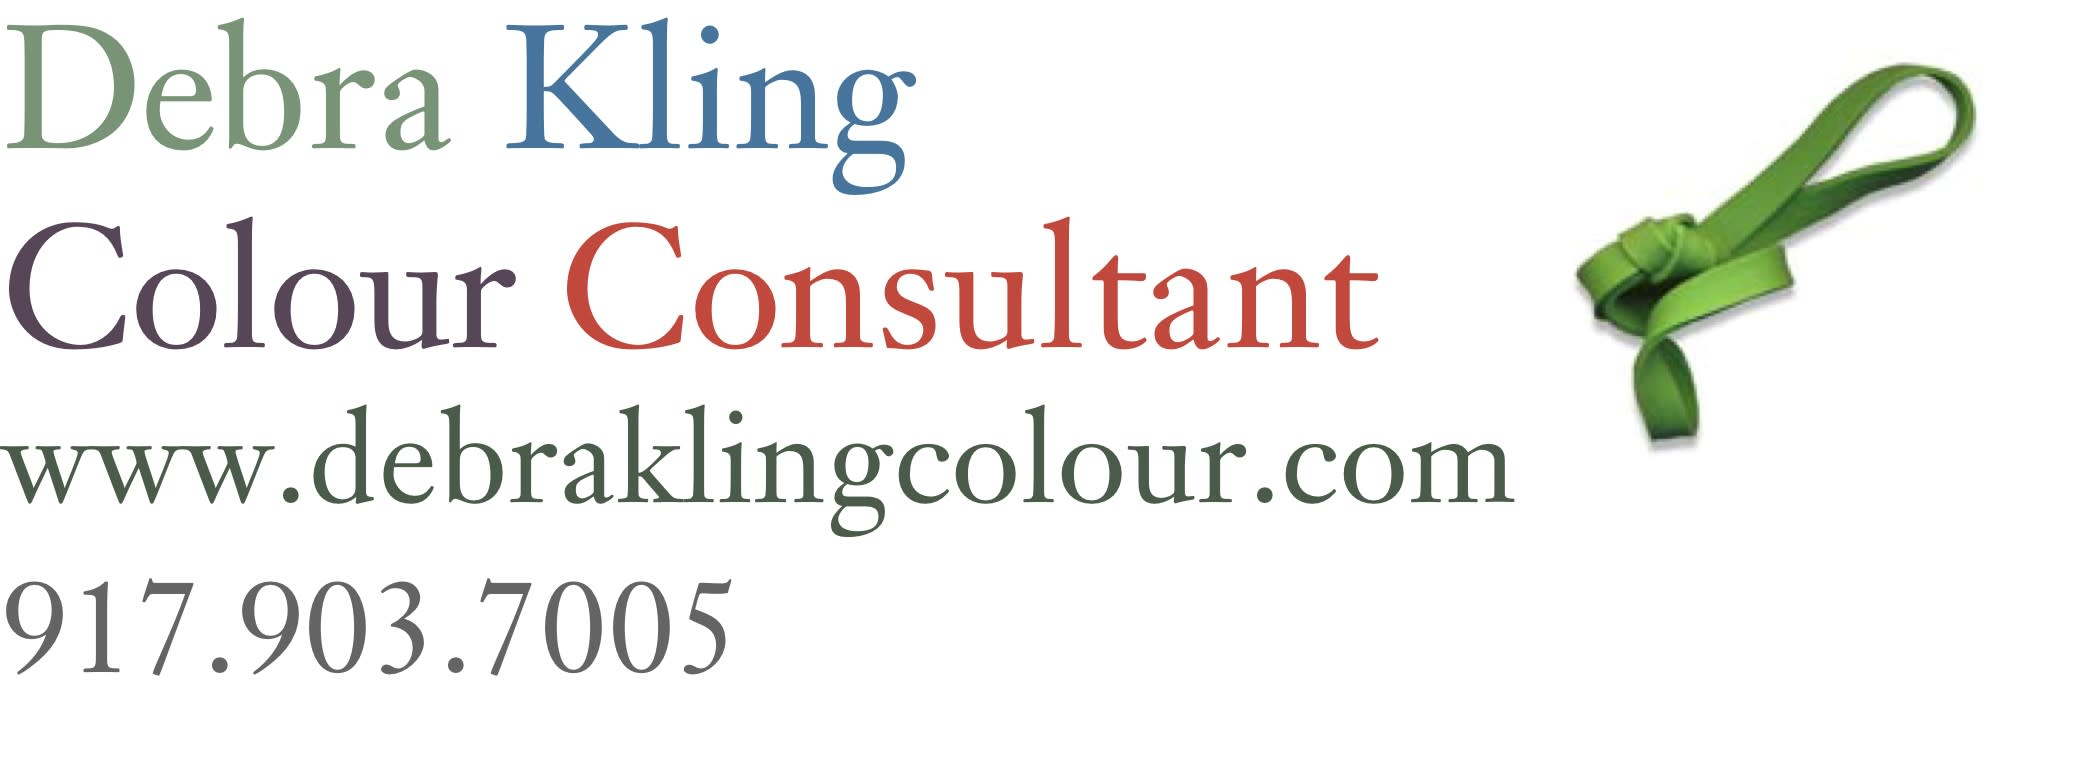 Debra Kling Colour Consultant, LLC